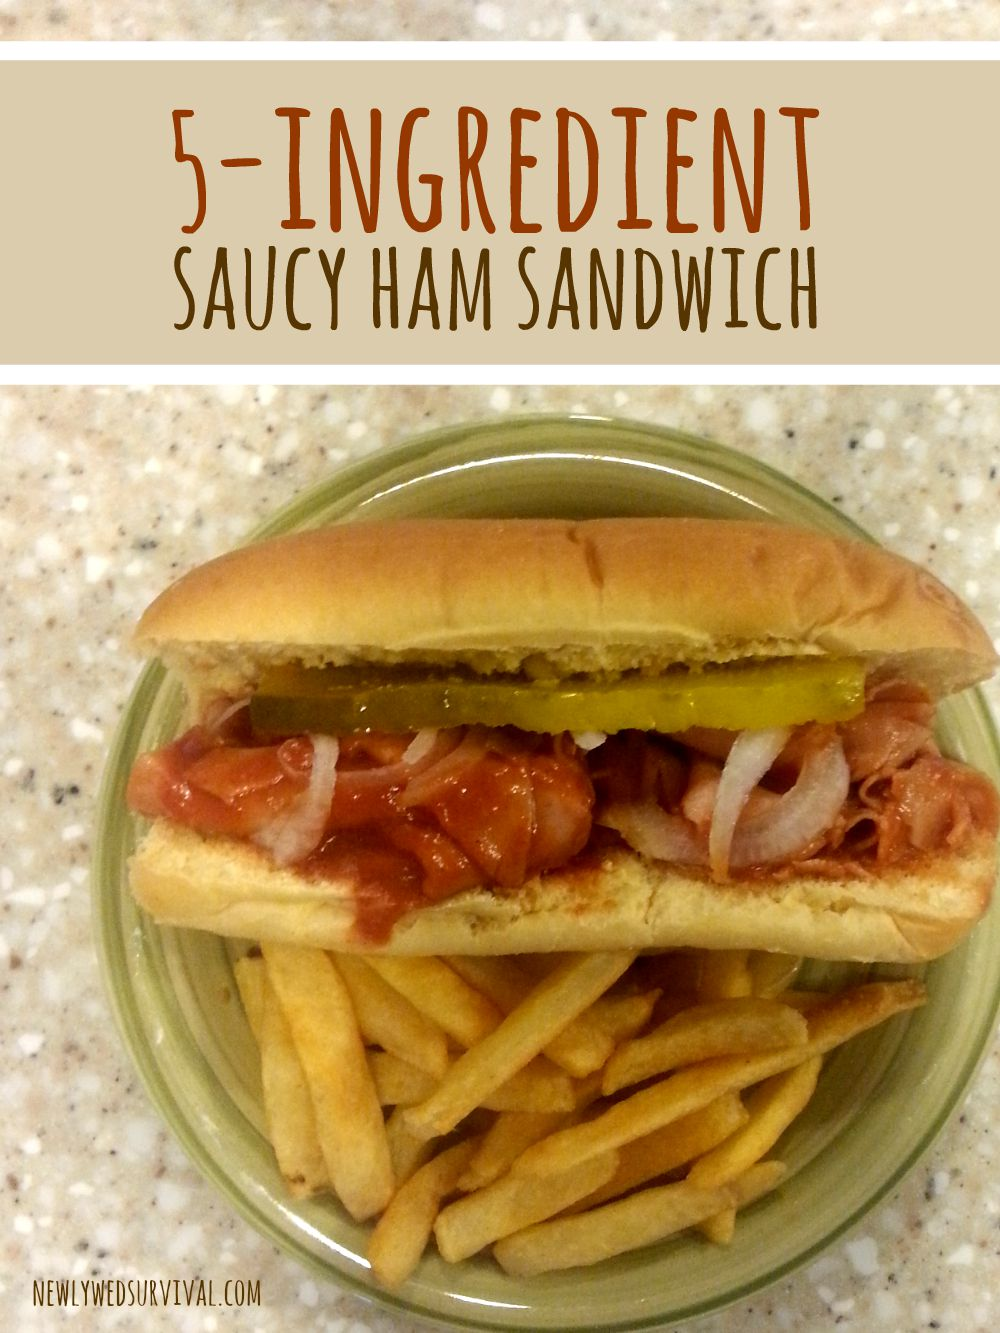 Saucy ham sandwich only 5 ingredients needed #manwichmonday